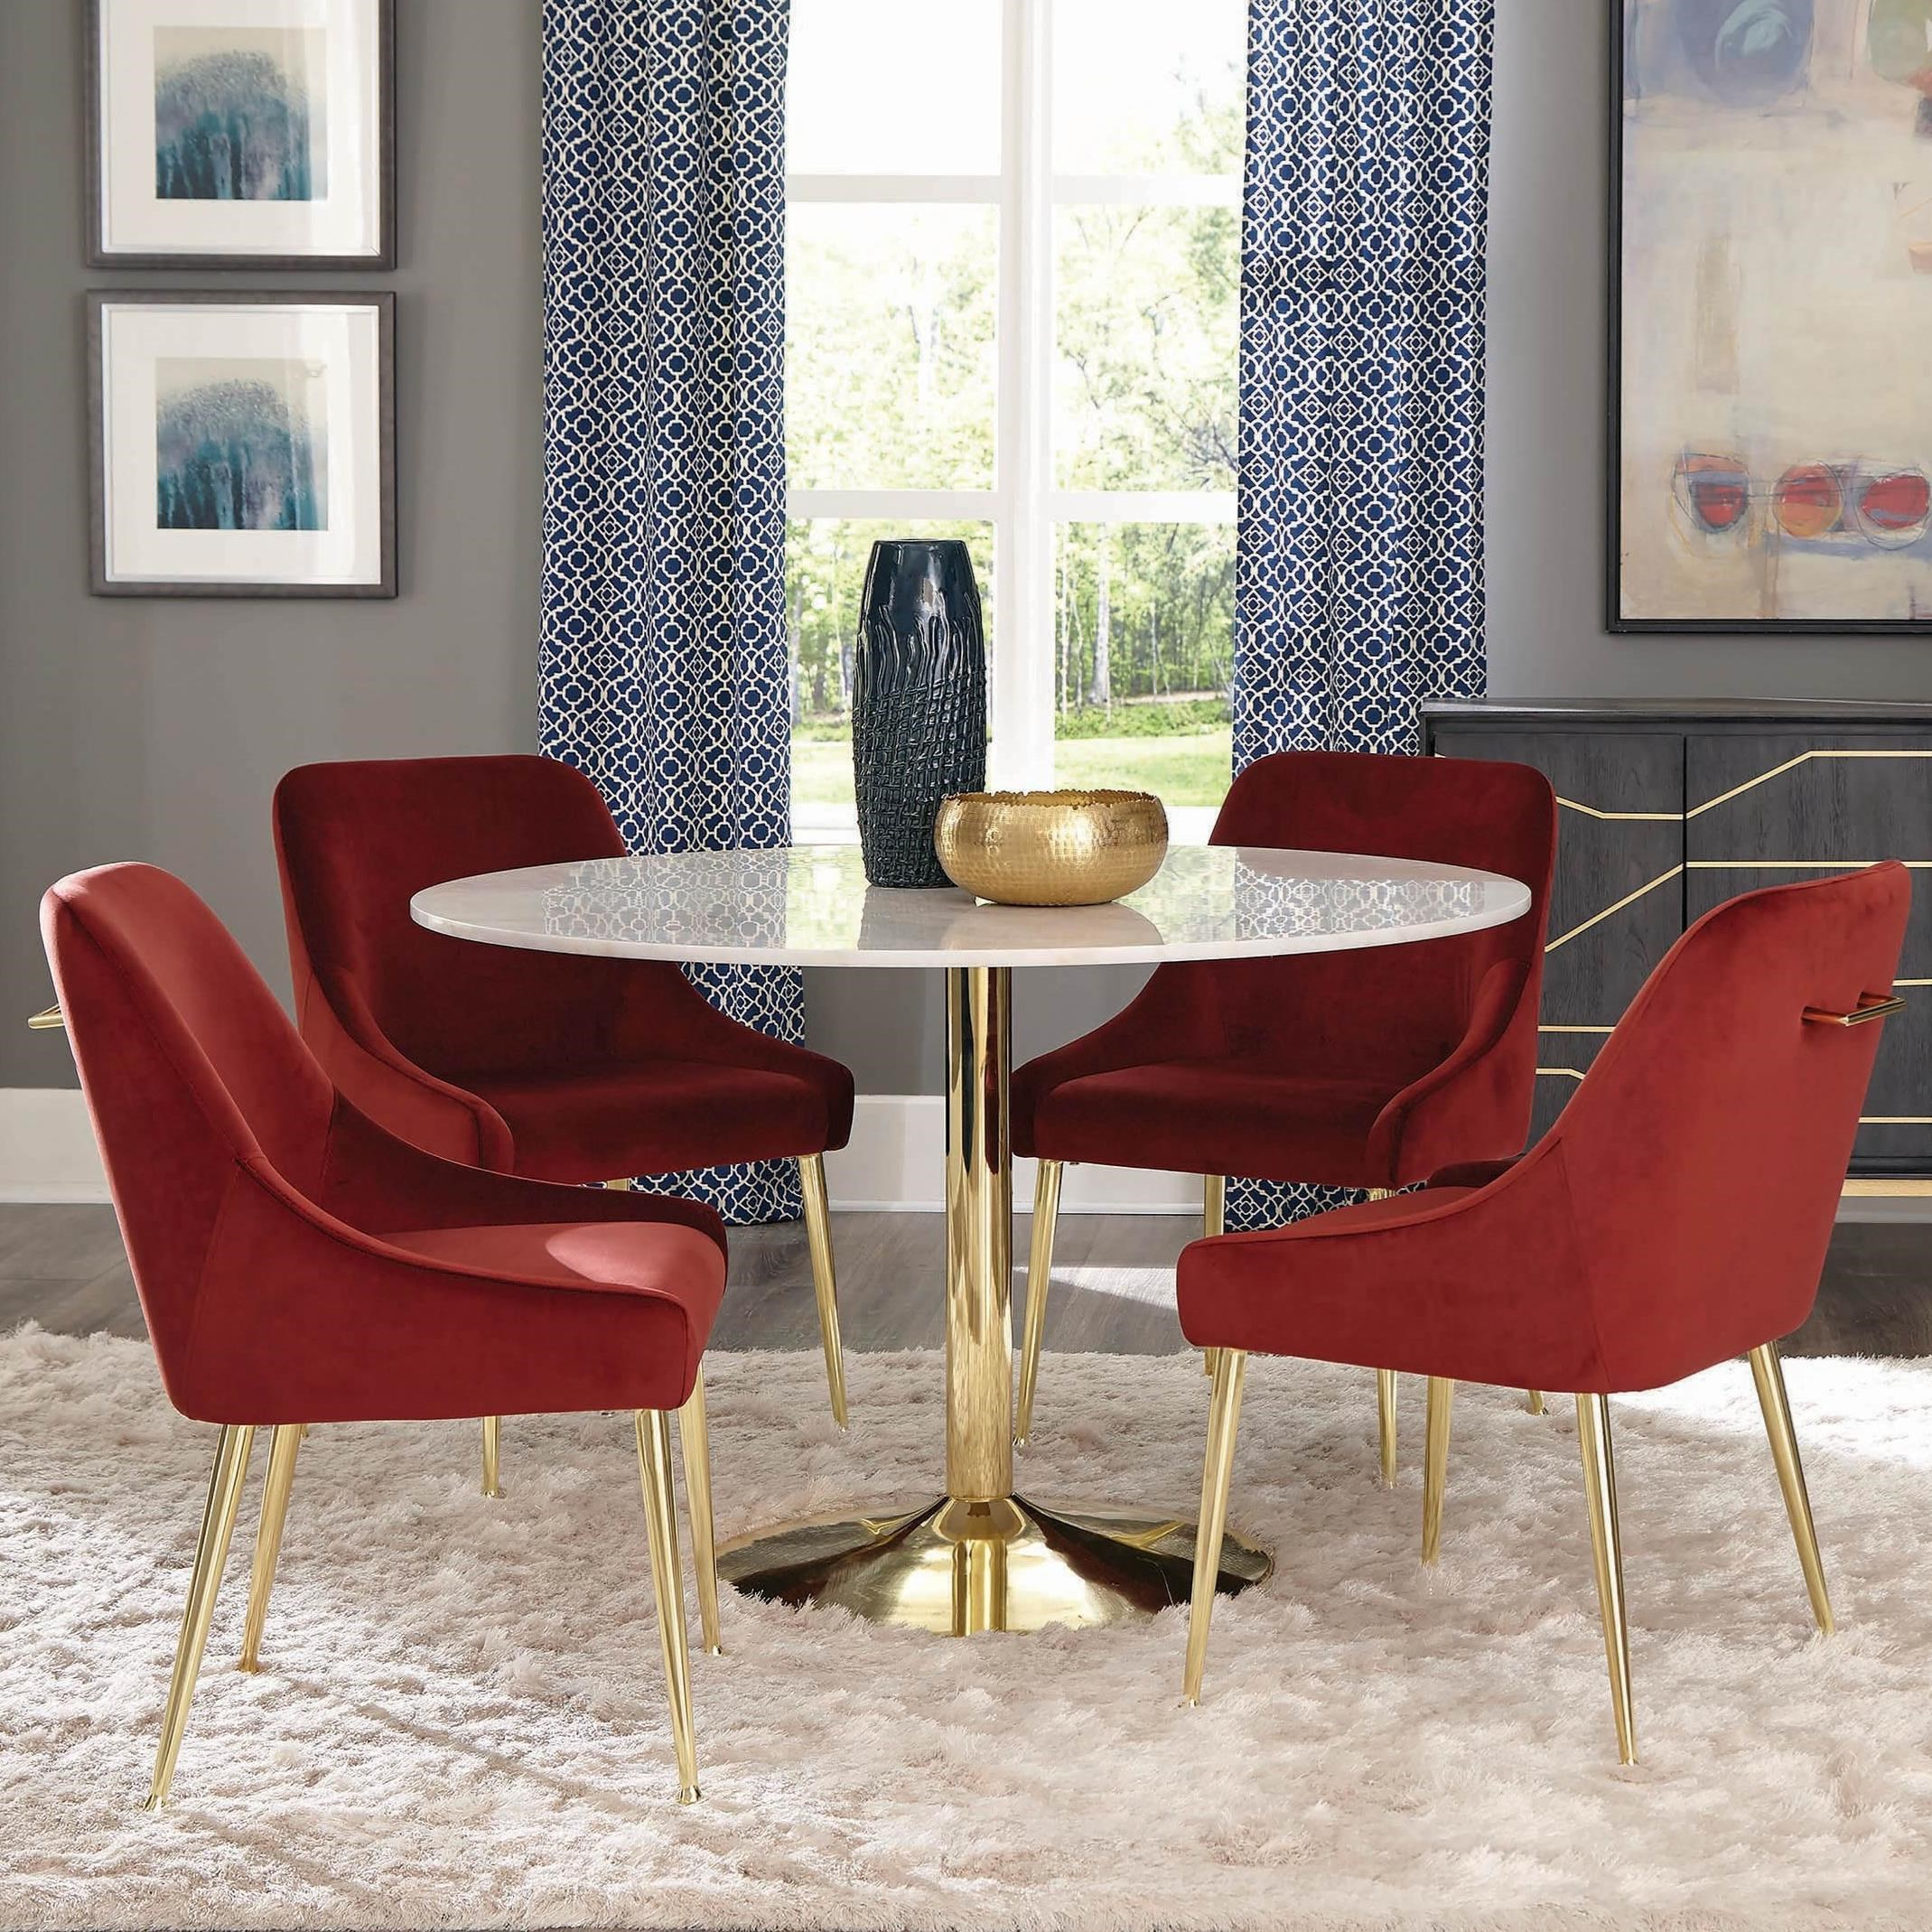 Coaster Carone Contemporary Glam Dining Room Set With: Scott Living Steele 5 Piece Glam Dining Set With Marble